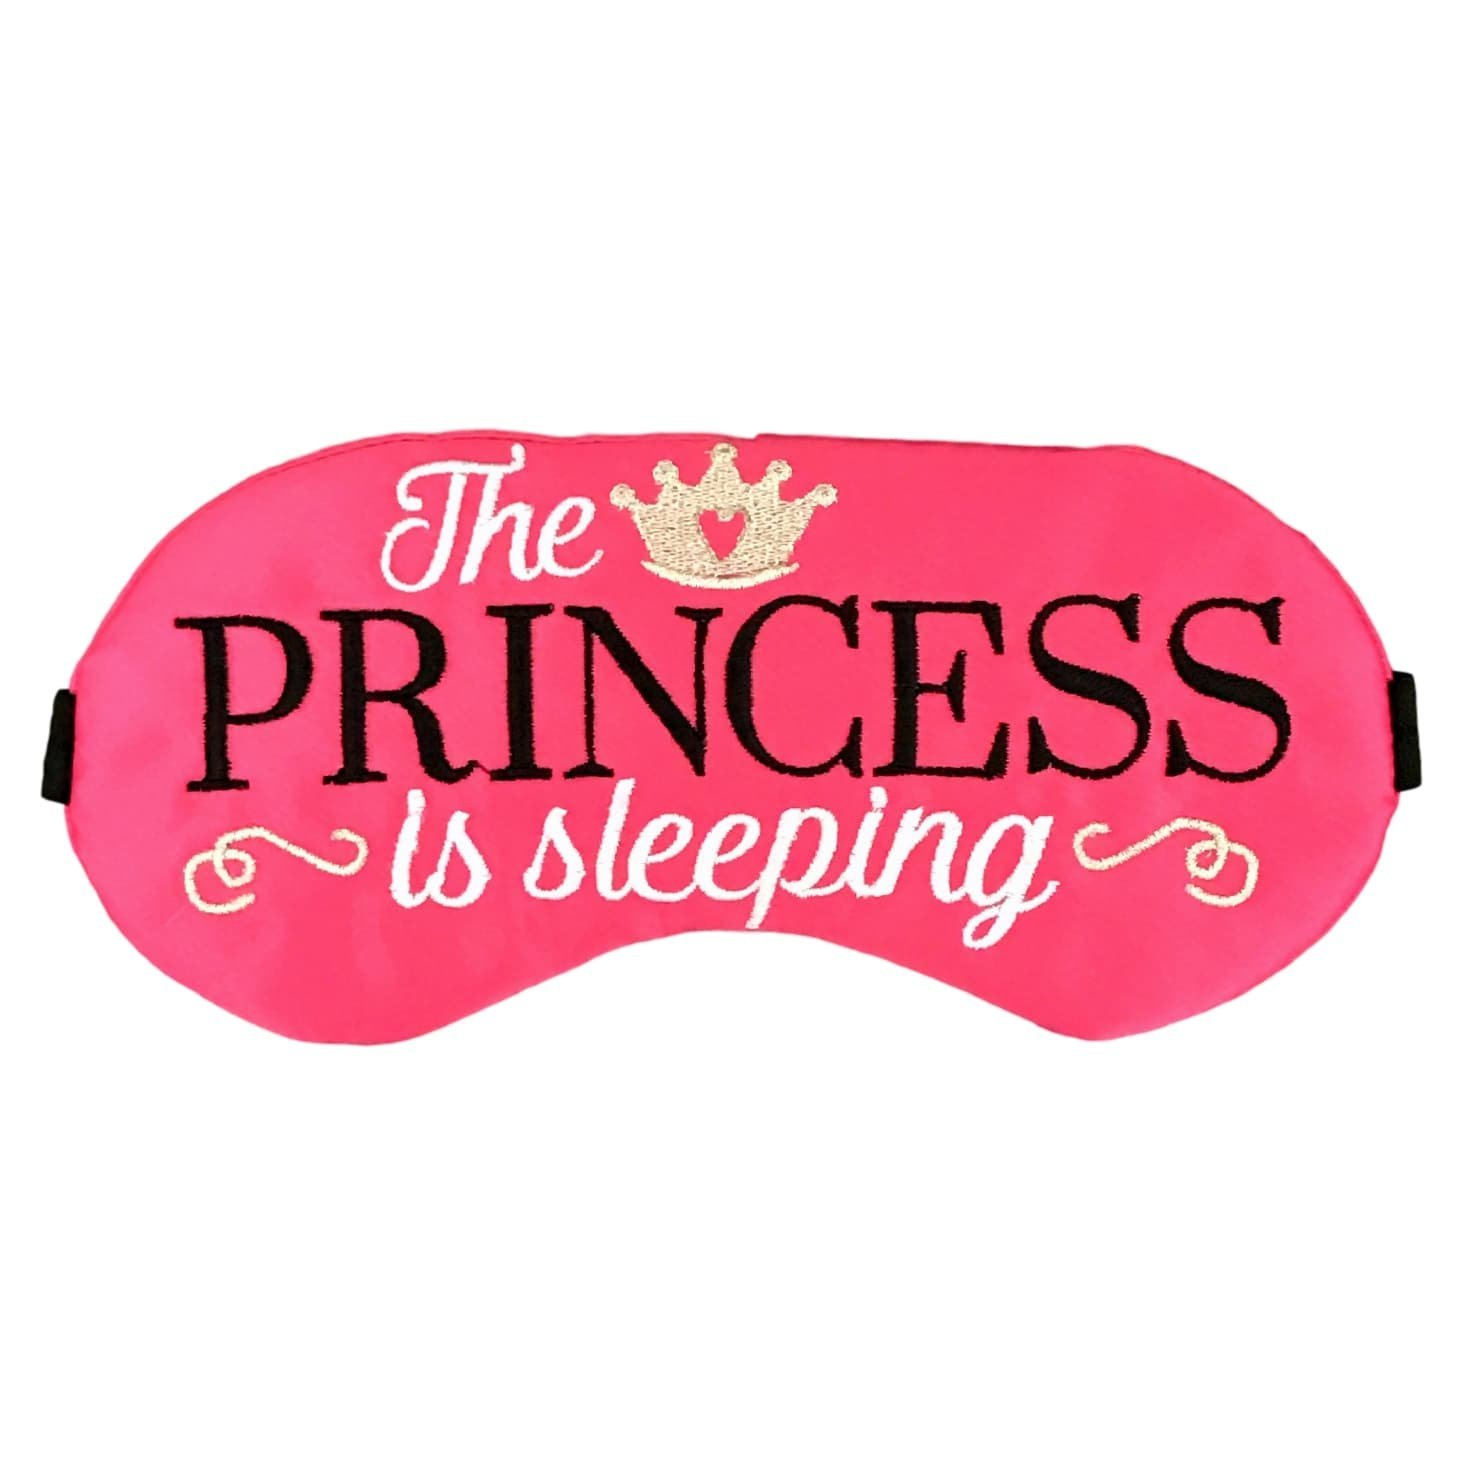 The Princess is Sleeping Satin Sleep Mask in Hot Pink with Black and Silver